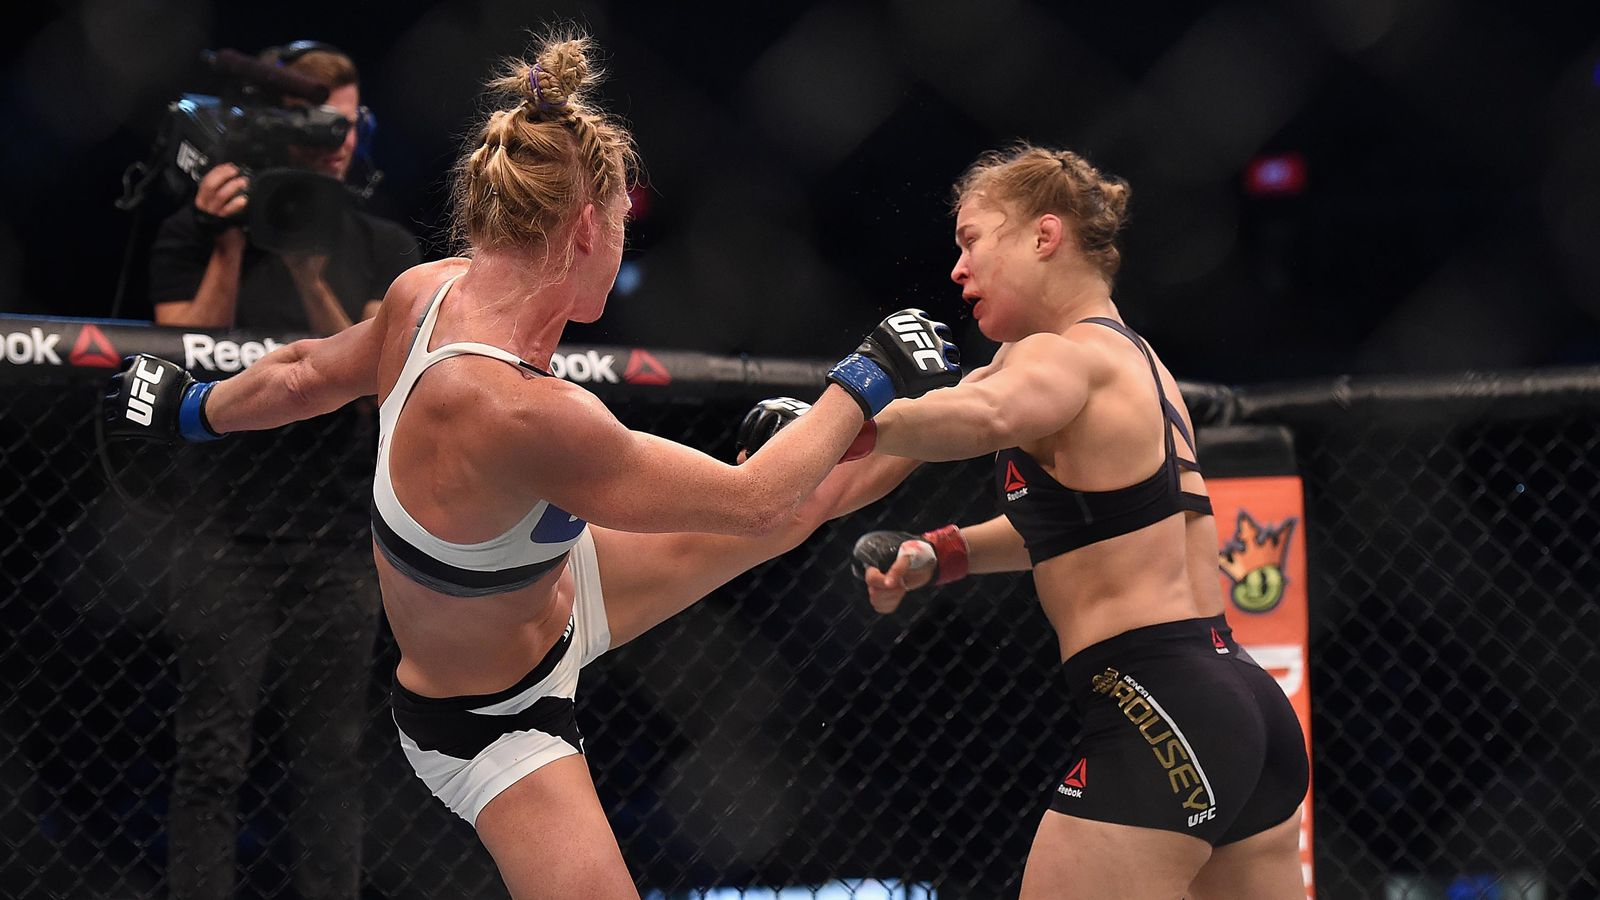 UFC 208 'Top 8 Finishes:' Holm's Rousey KO Erased